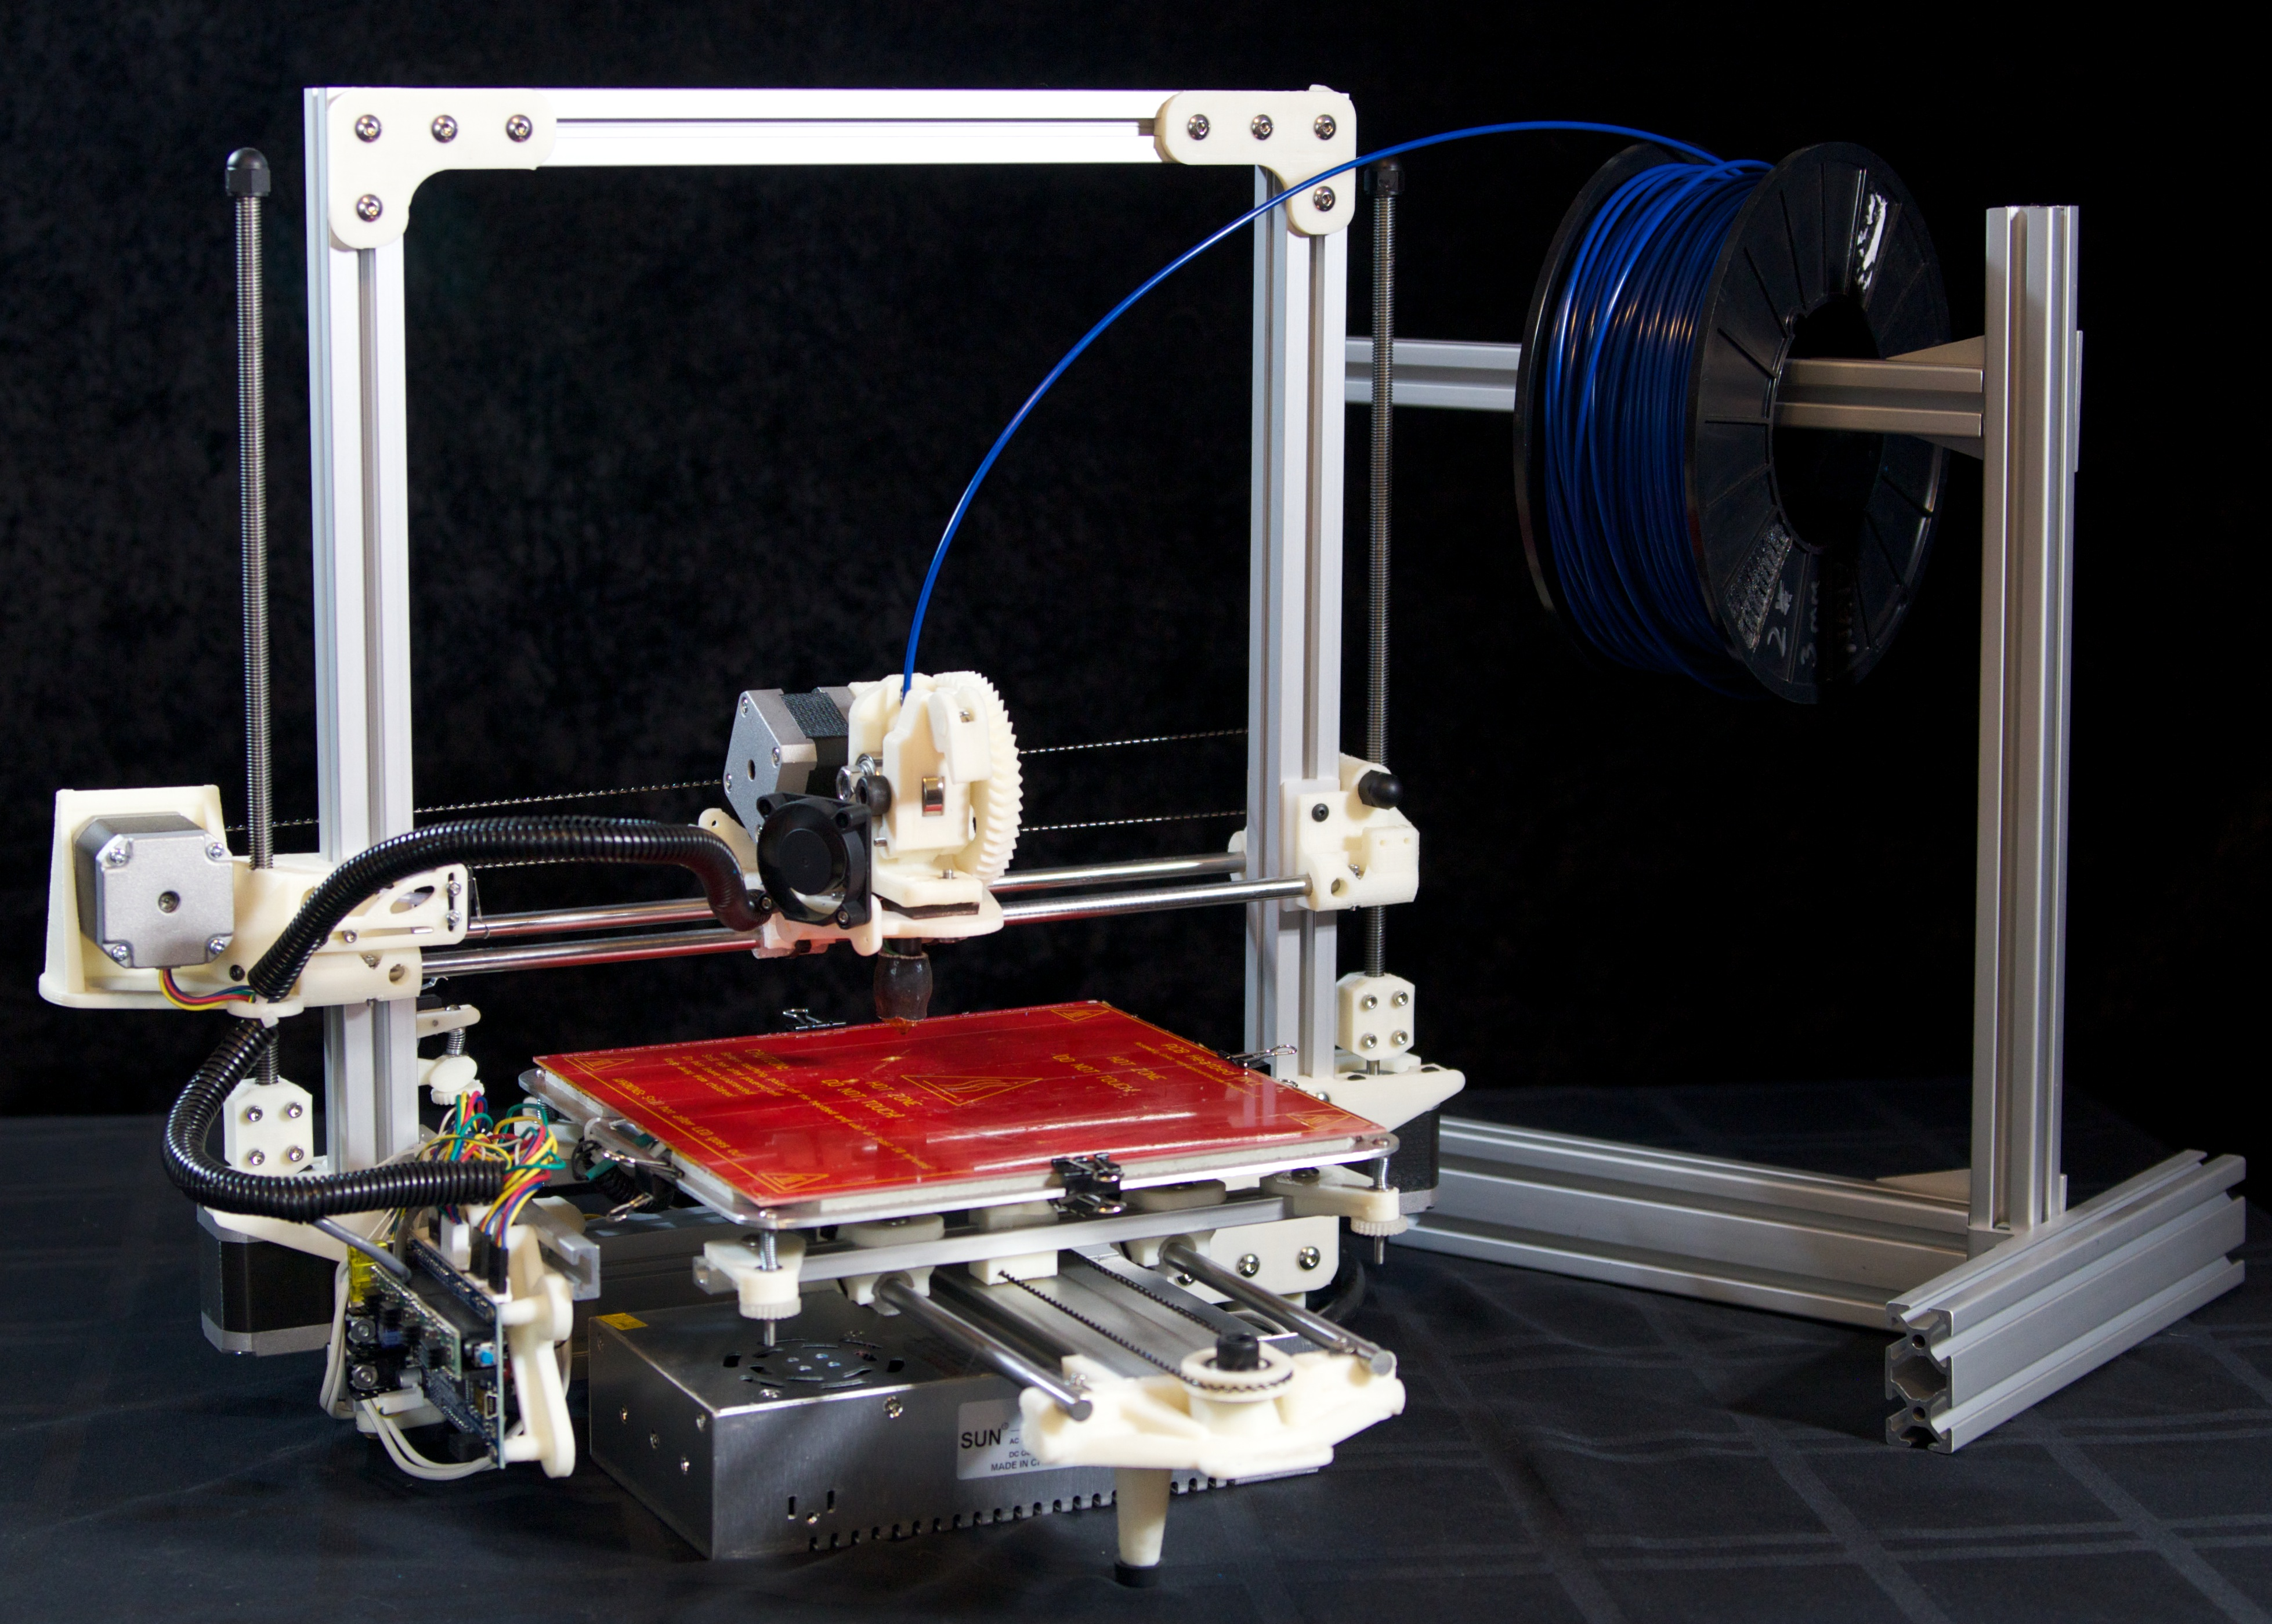 reprap project I am building a 3d printer as a tool for metal working and casting i plan to do lost pla/abs casting by using 3d prints as an investment for a negative mold.